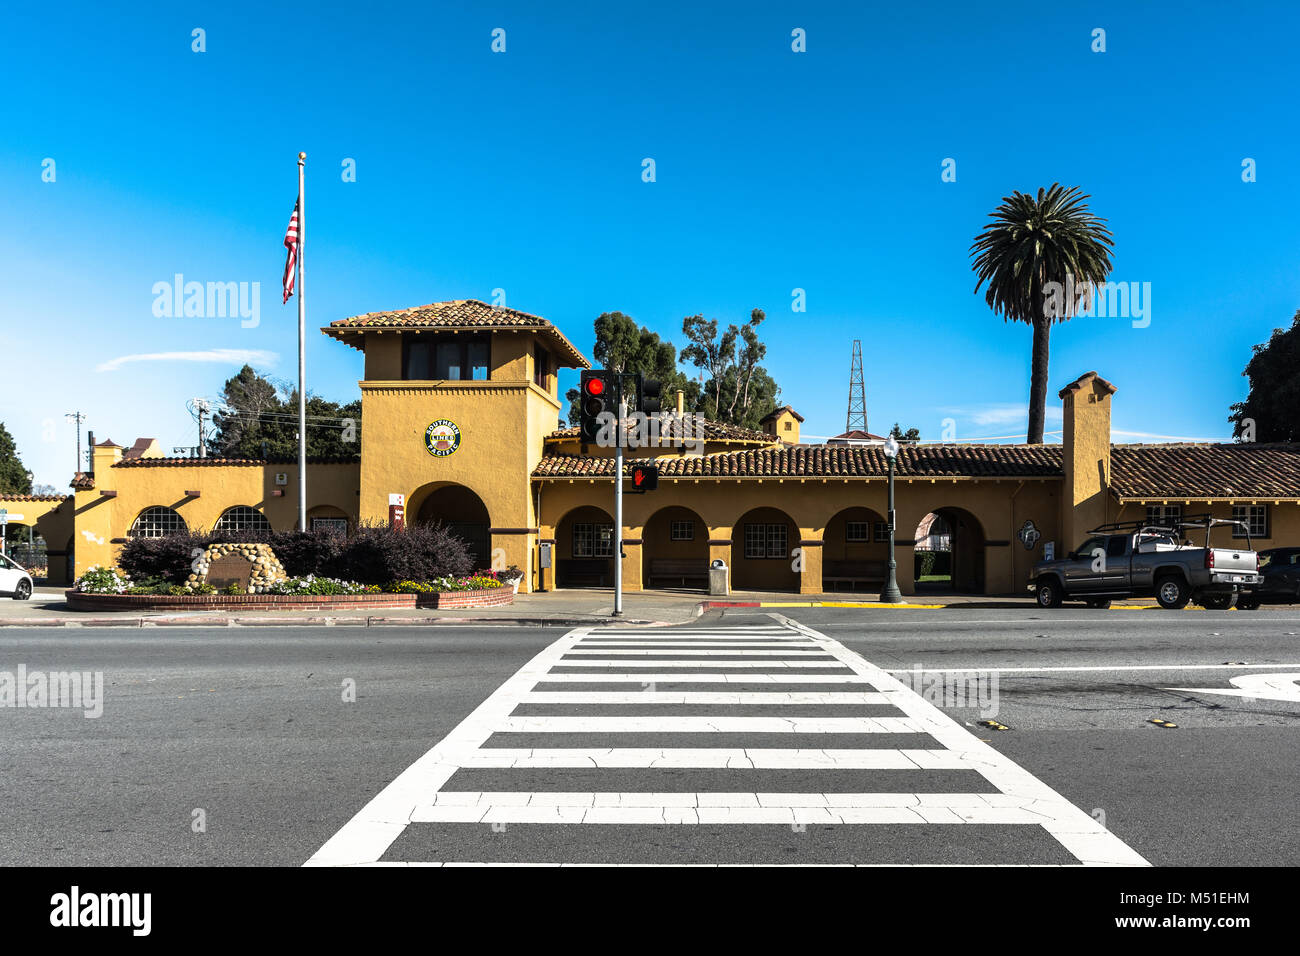 Burlingame,California,USA - December 10, 2017 : View of the Burlingame Caltrain Station - Stock Image